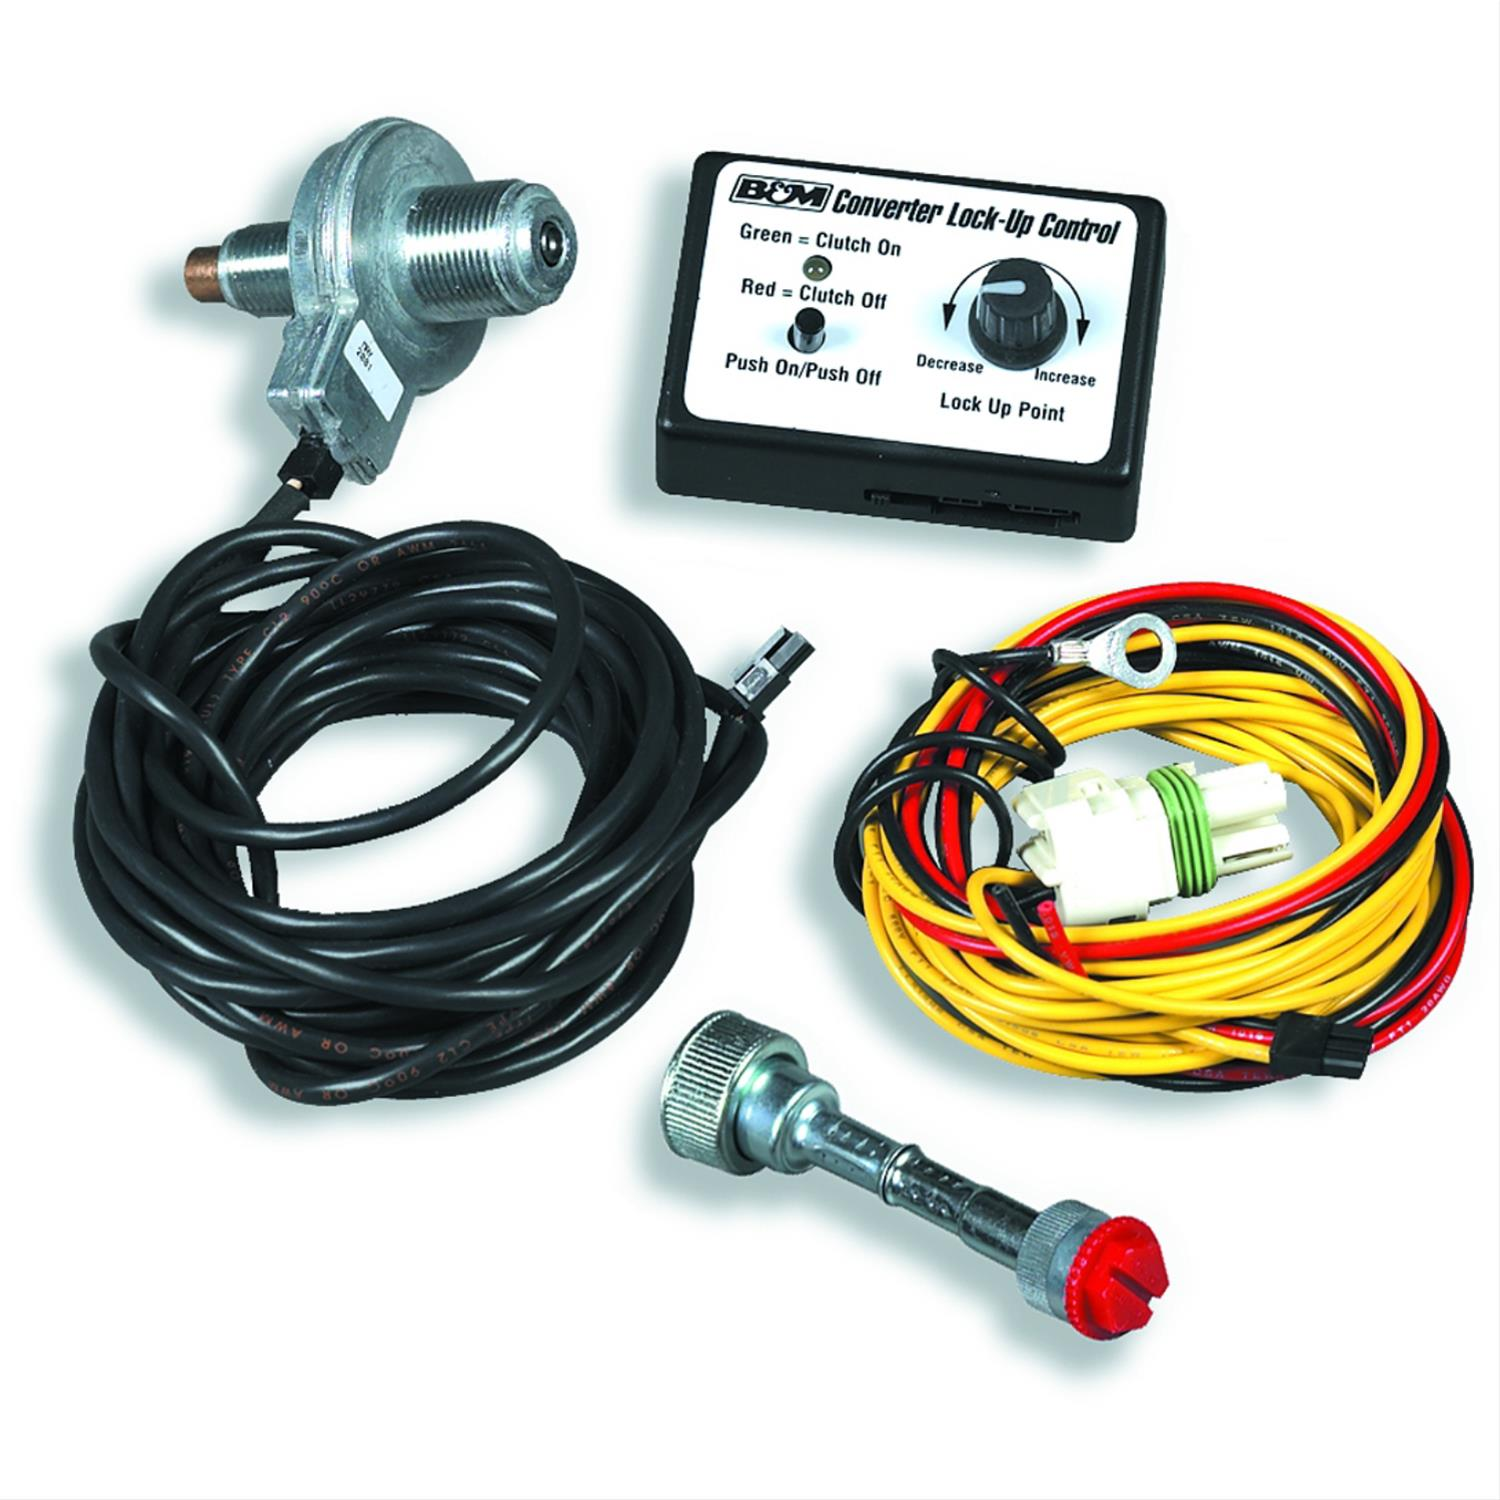 hight resolution of b m converter lockup controls 70244 free shipping on orders over 99 at summit racing